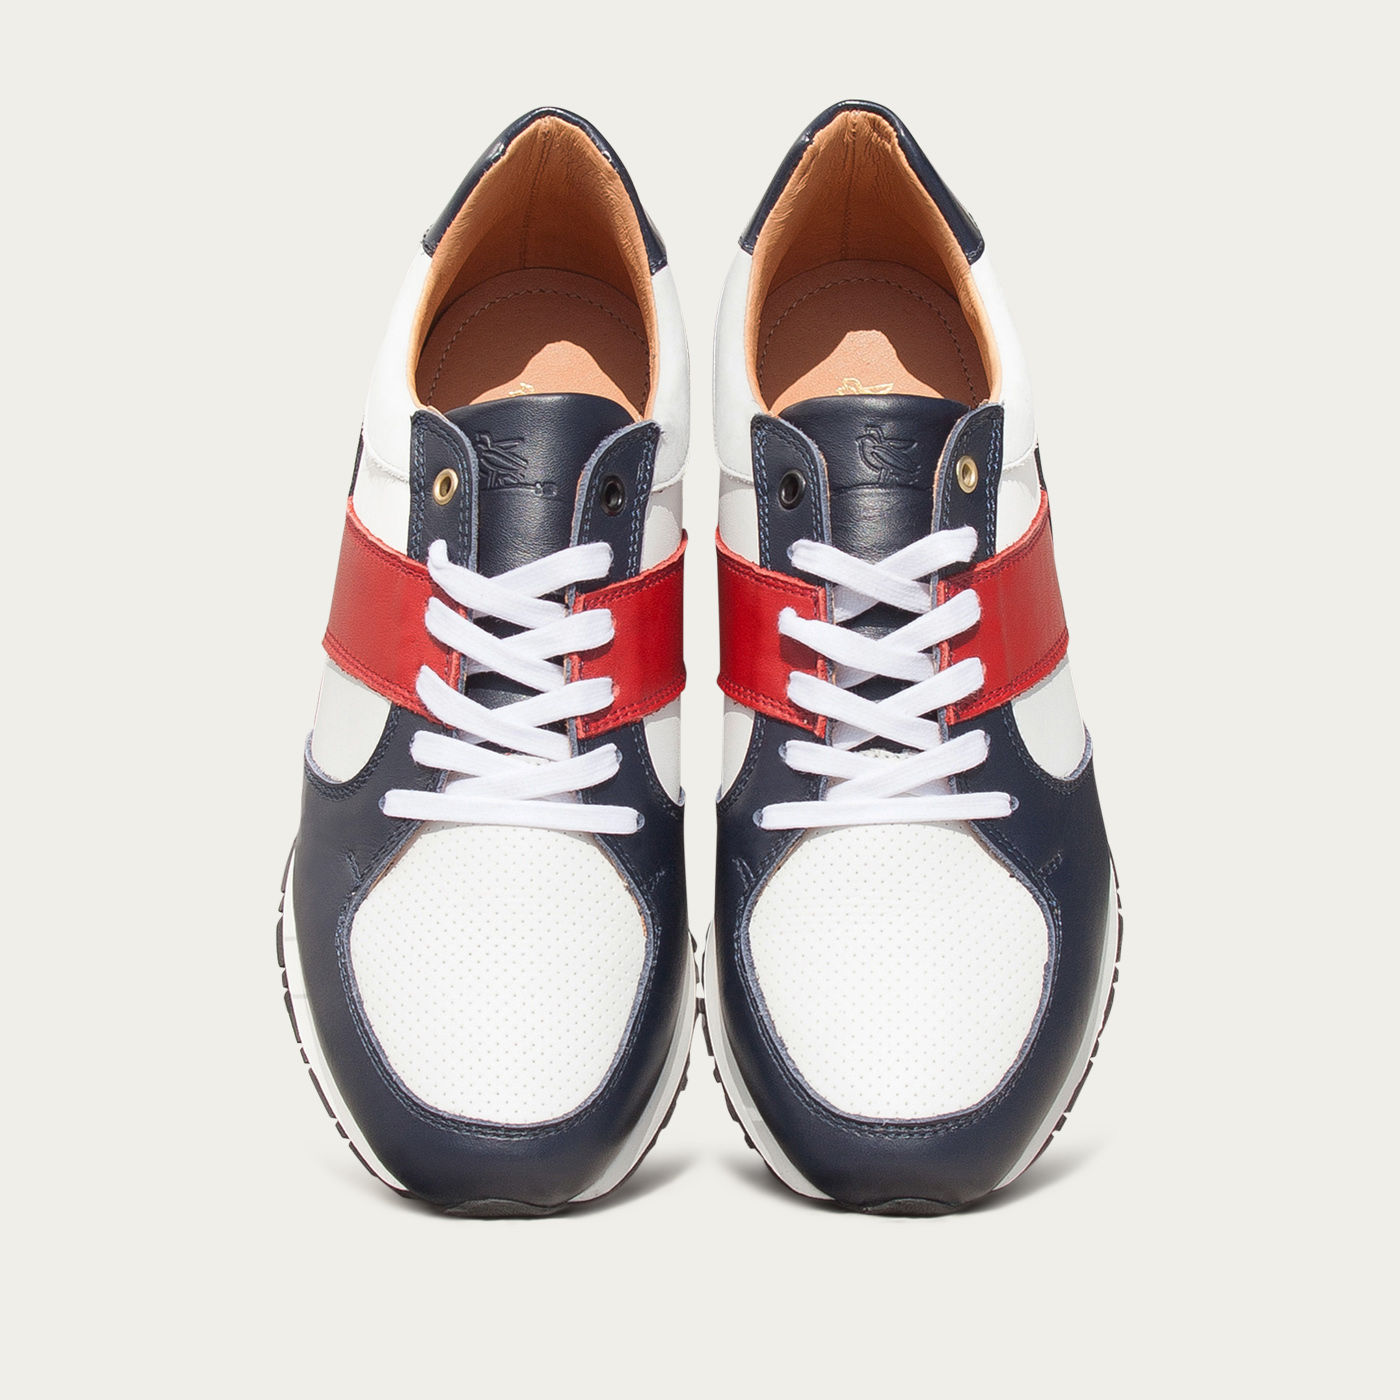 France Roseicollis Sneakers | Bombinate